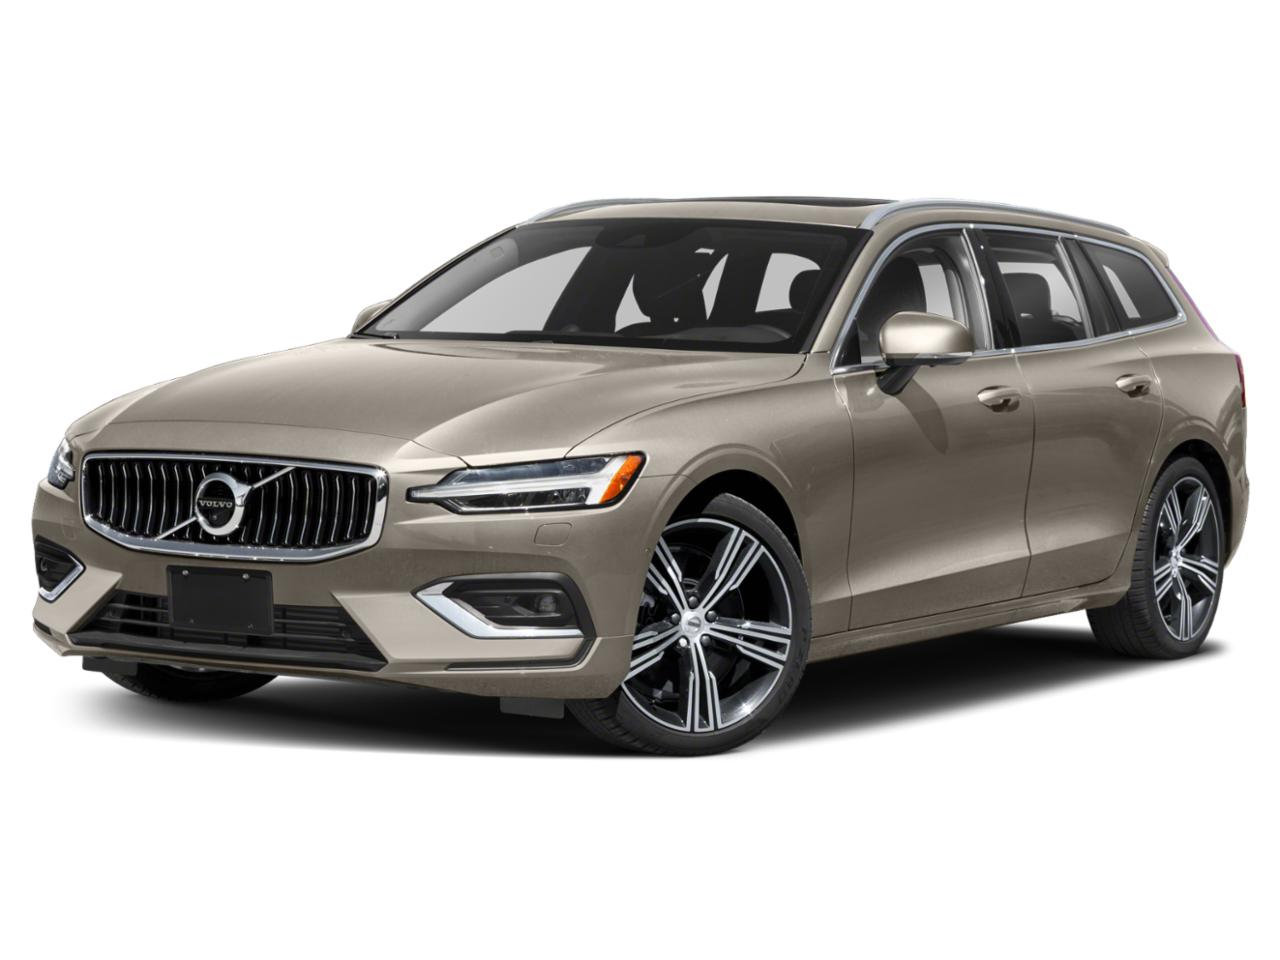 2020 Volvo V60 Vehicle Photo in Grapevine, TX 76051